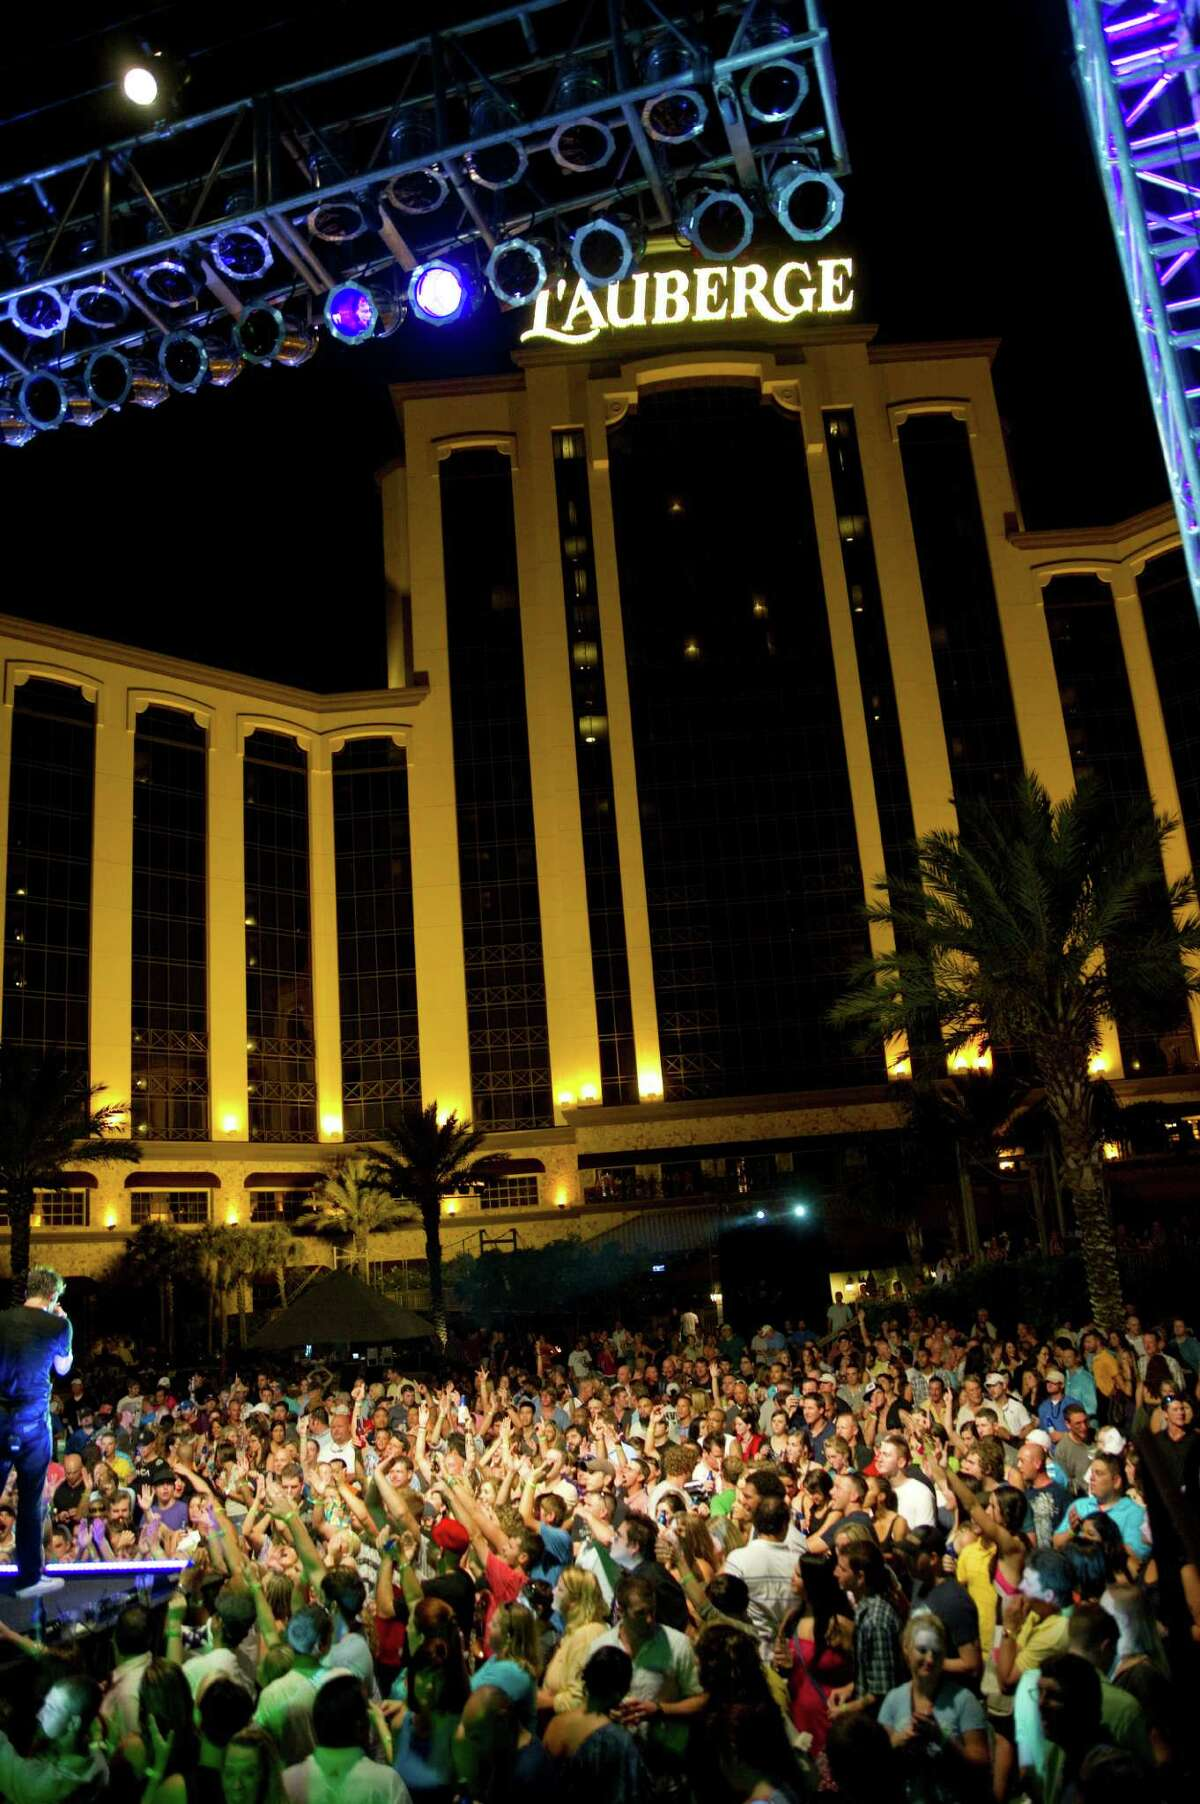 L'Auberge Casino Resort in Lake Charles, La. The pool at L'Auberge Casino Resort in Lake Charles plays host to a Thursday night party/concert series called Liquid Society over the summer.